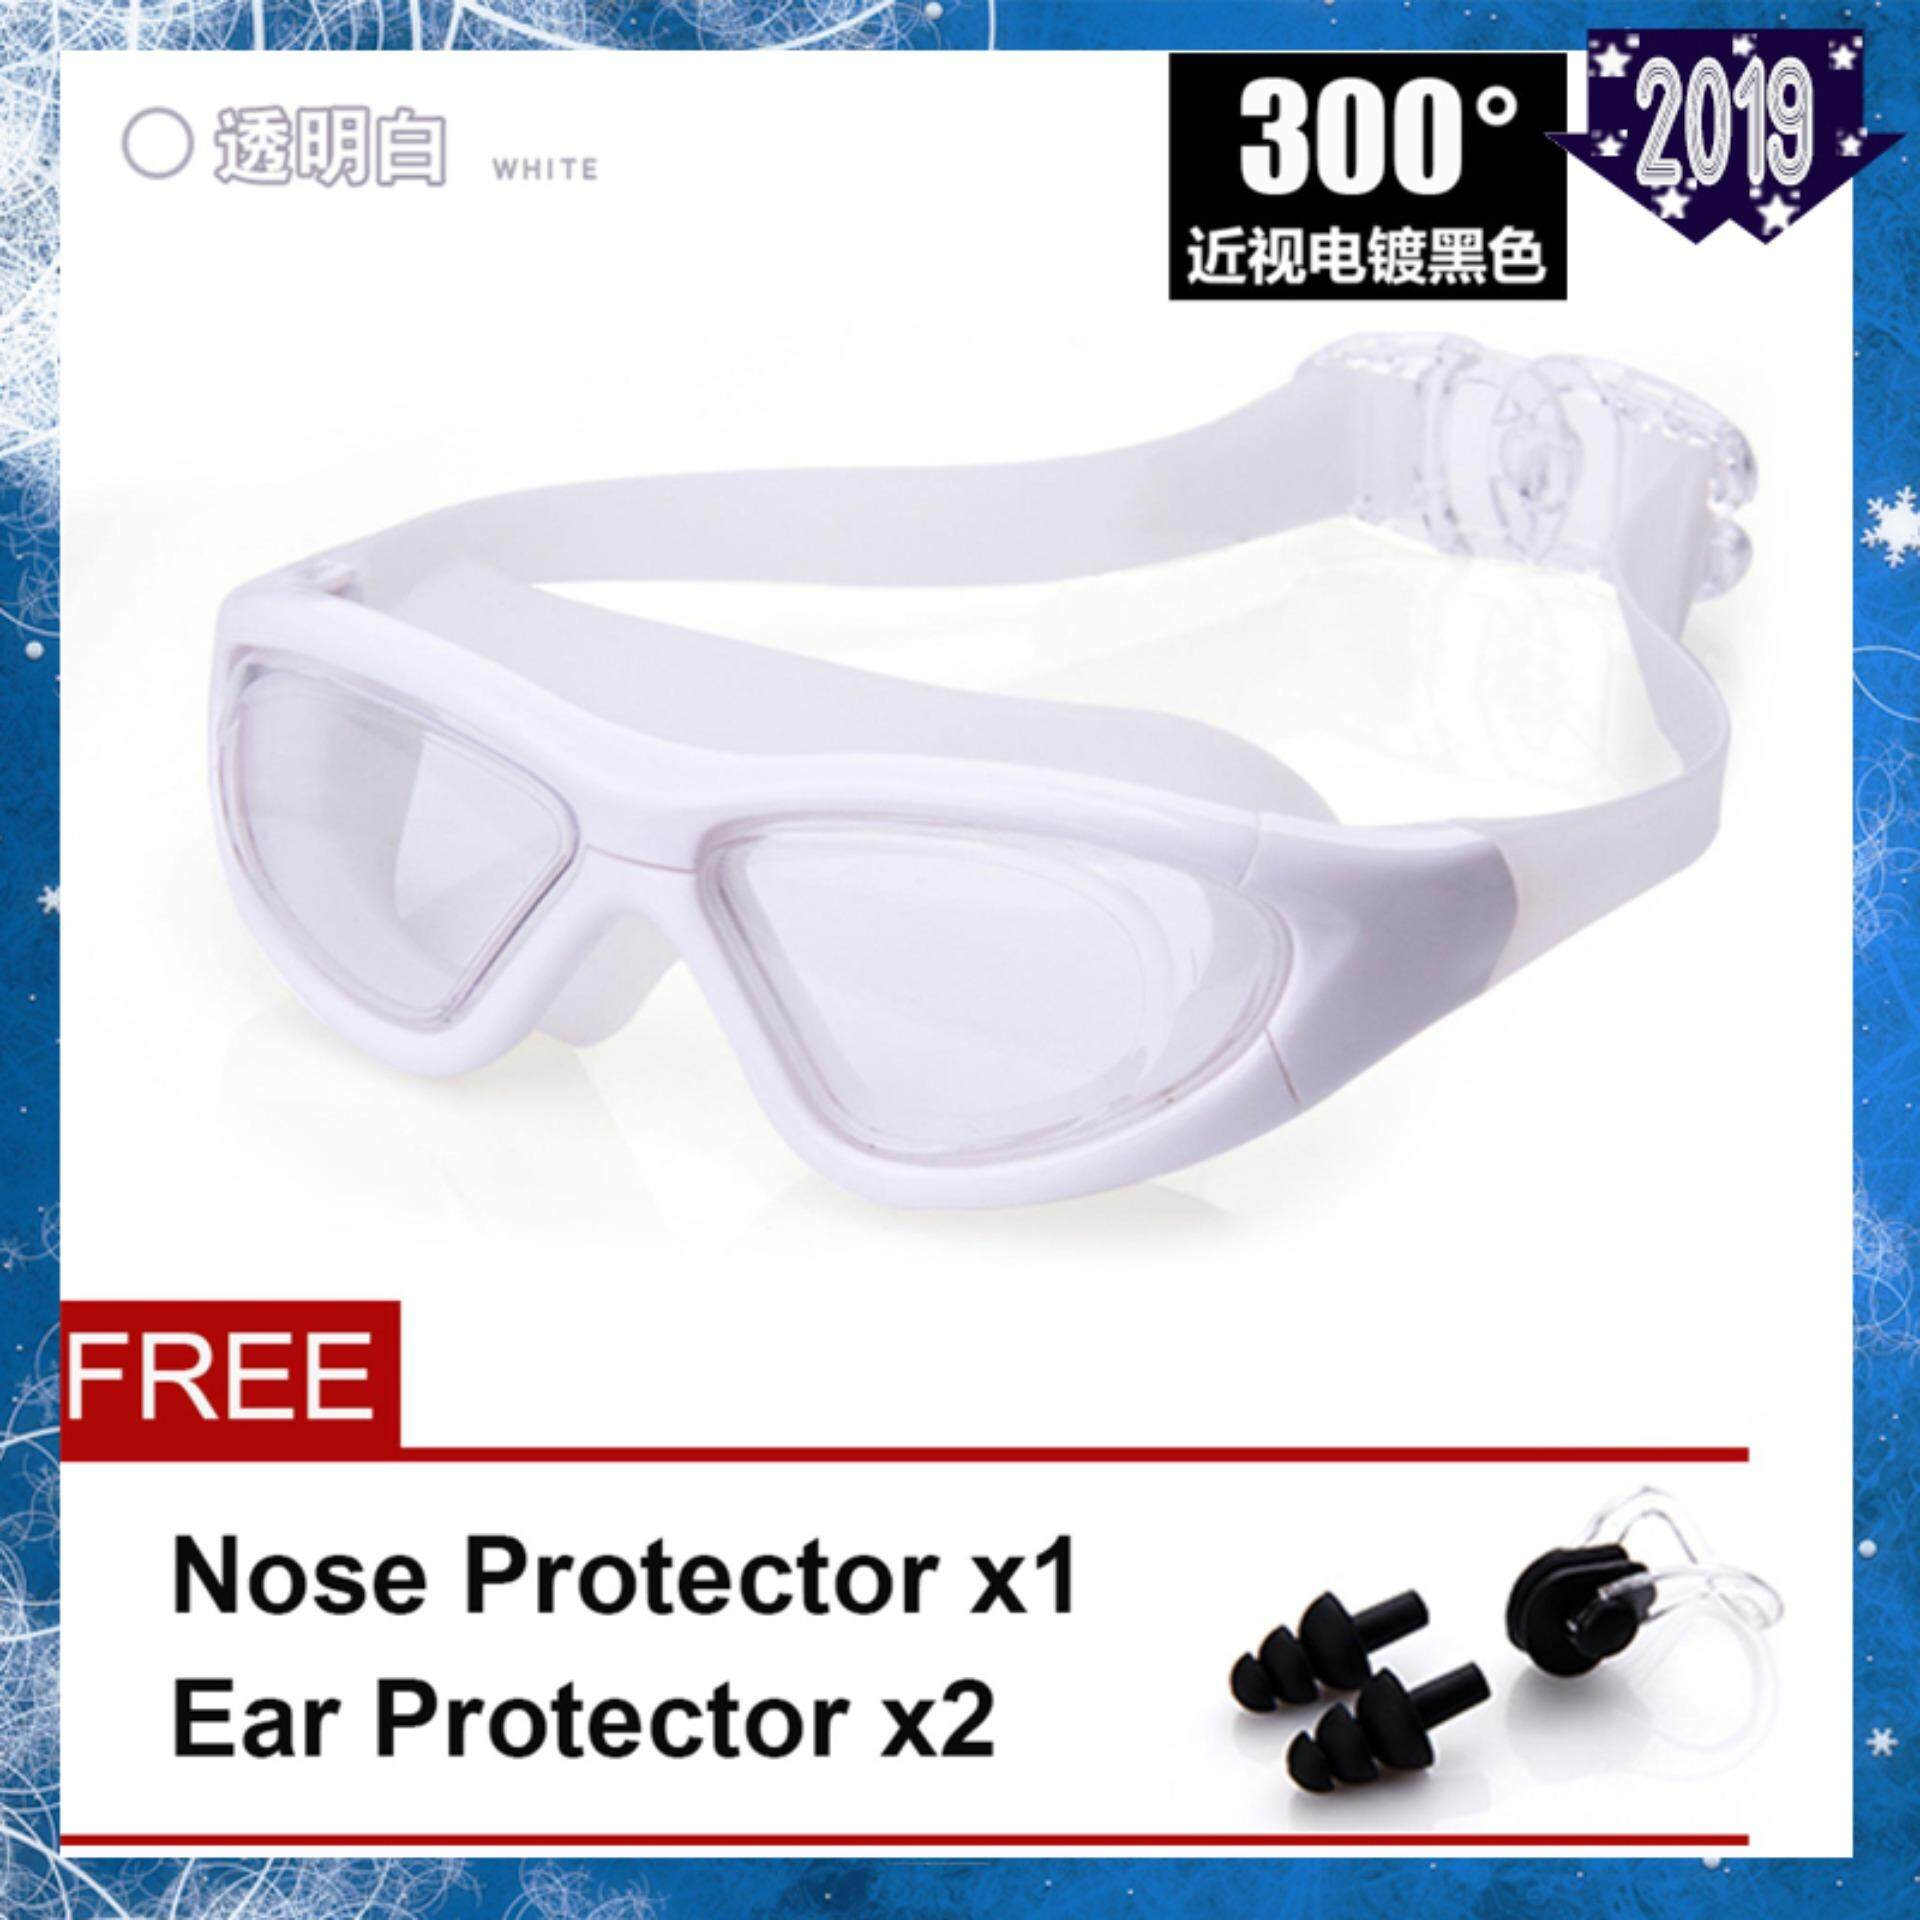 YOUYOU (300?) Female Edition Anti Fog Swimming Goggles High Defination Waterproof Glasses with Protective Case Tinted UV Protection For People With Low Vision (Power Edition)